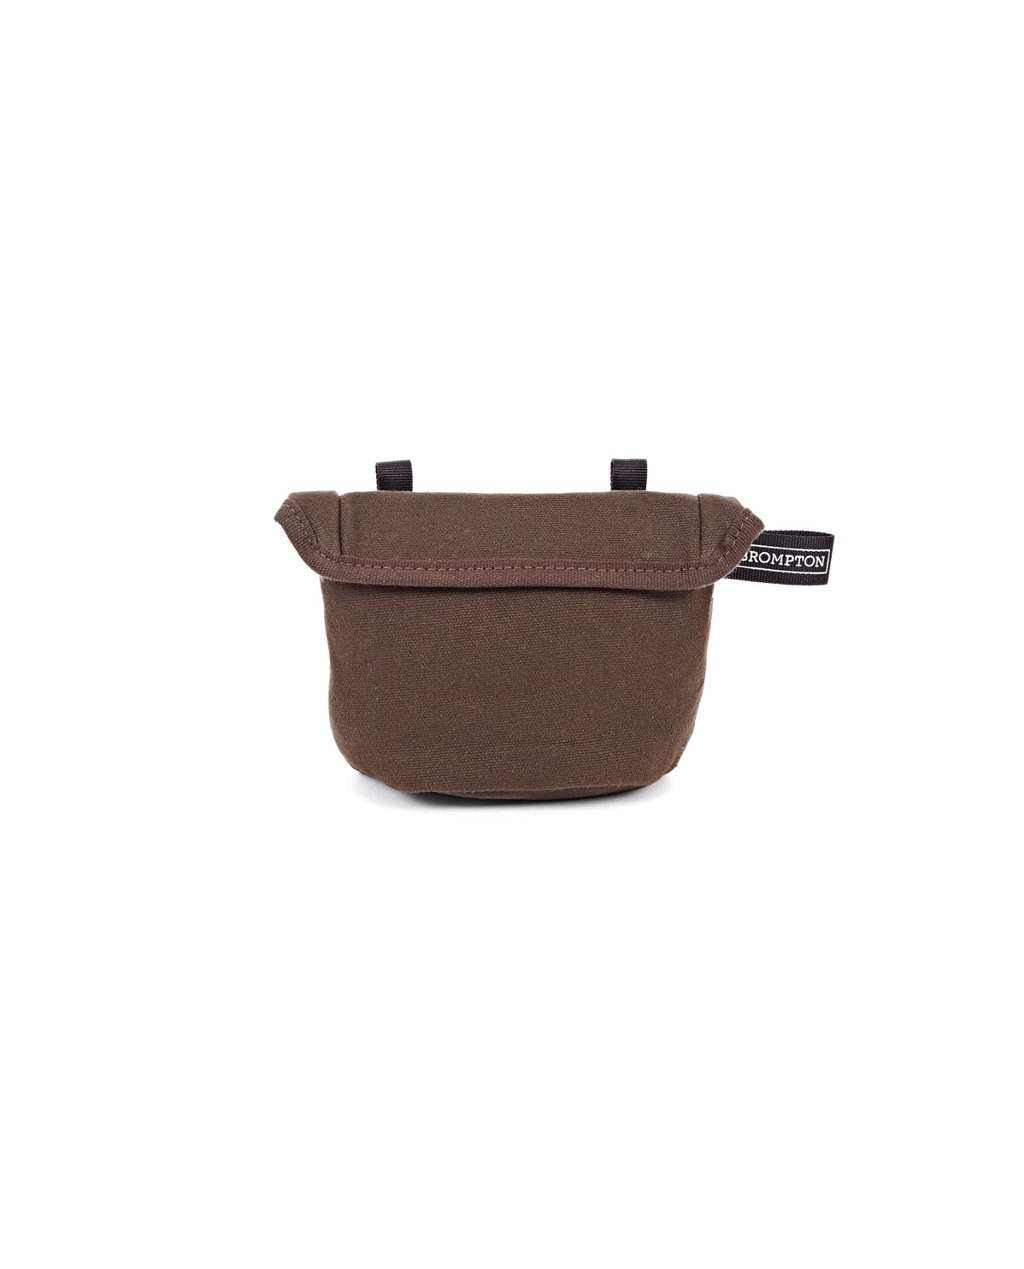 Q-Parts - Saddle Pouch - Khaki